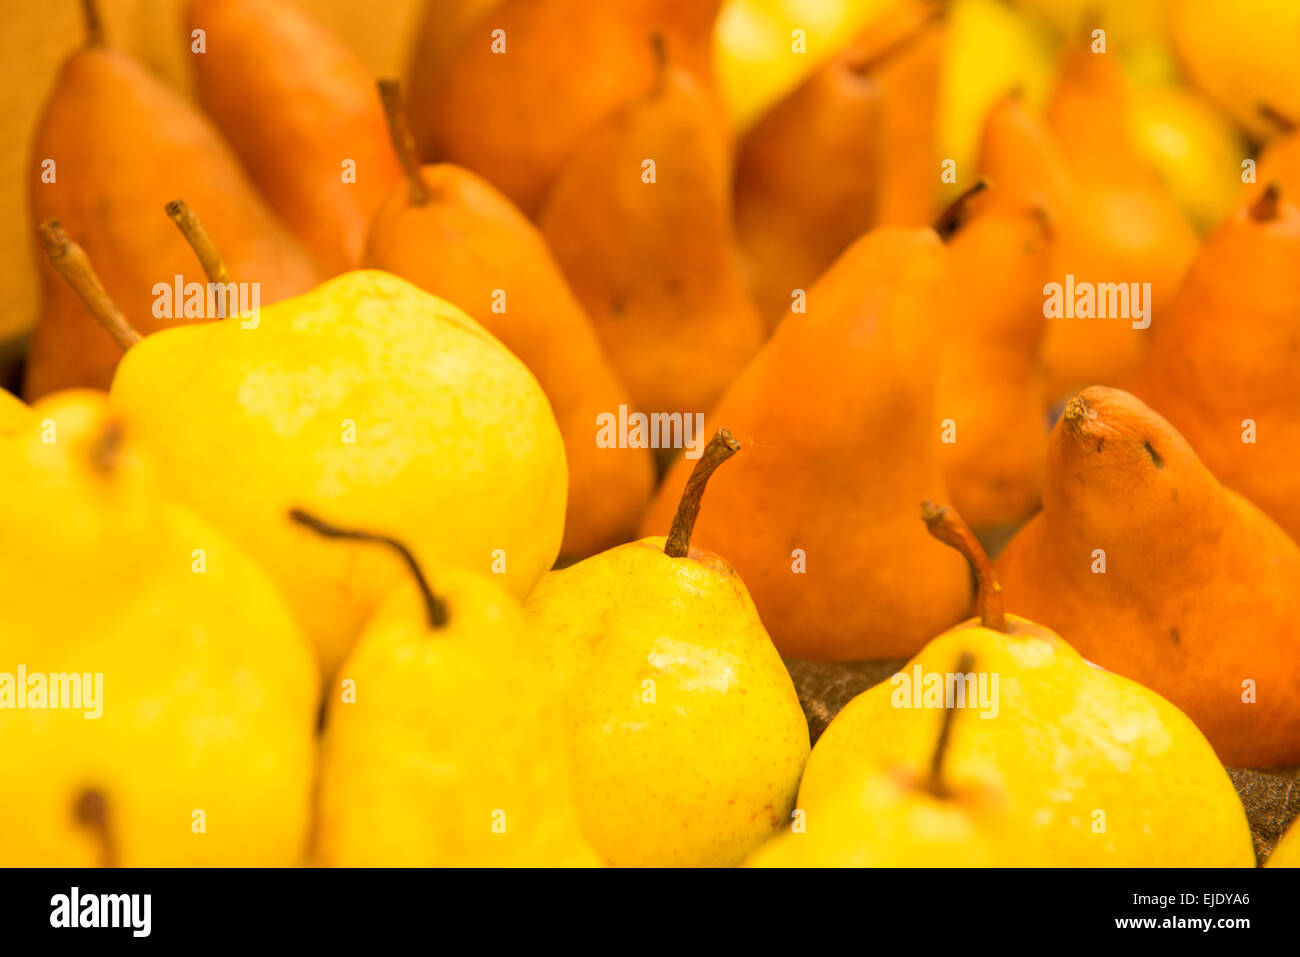 Tight shot of Fresh Pears. - Stock Image